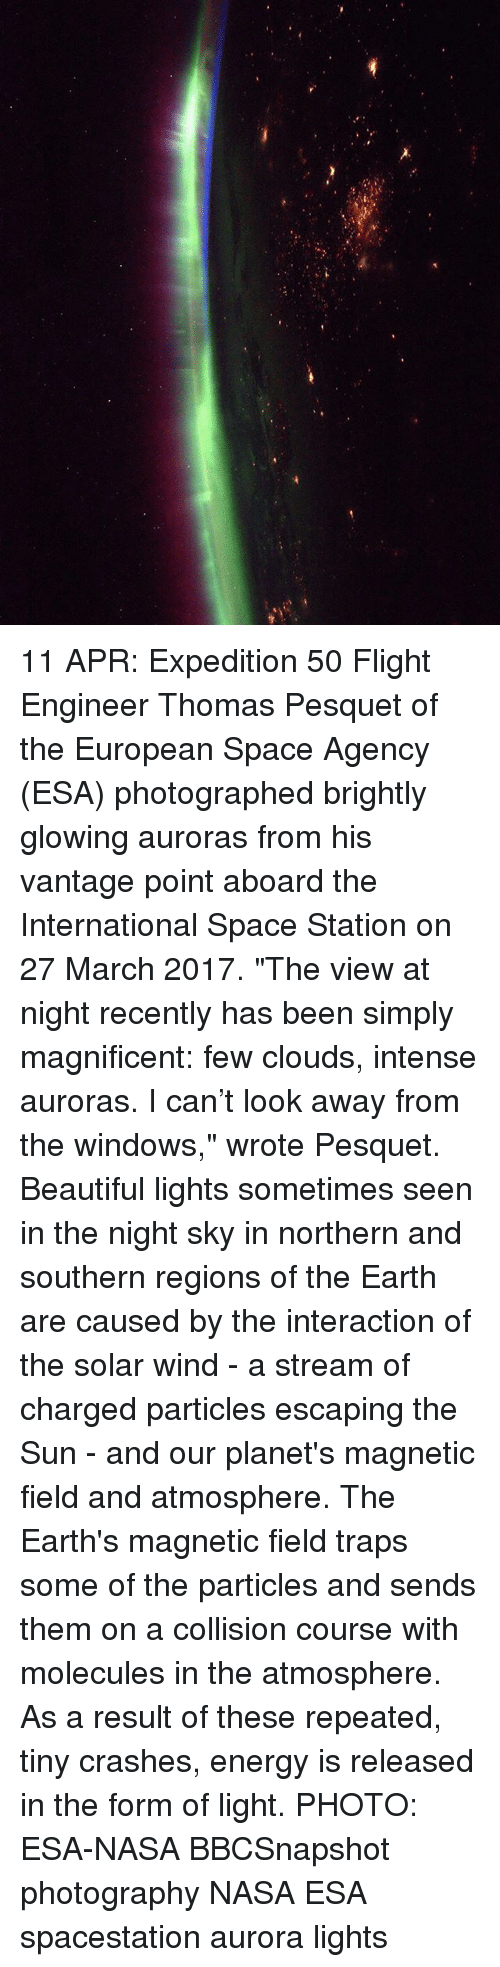 """Beautiful, Energy, and Memes: 11 APR: Expedition 50 Flight Engineer Thomas Pesquet of the European Space Agency (ESA) photographed brightly glowing auroras from his vantage point aboard the International Space Station on 27 March 2017. """"The view at night recently has been simply magnificent: few clouds, intense auroras. I can't look away from the windows,"""" wrote Pesquet. Beautiful lights sometimes seen in the night sky in northern and southern regions of the Earth are caused by the interaction of the solar wind - a stream of charged particles escaping the Sun - and our planet's magnetic field and atmosphere. The Earth's magnetic field traps some of the particles and sends them on a collision course with molecules in the atmosphere. As a result of these repeated, tiny crashes, energy is released in the form of light. PHOTO: ESA-NASA BBCSnapshot photography NASA ESA spacestation aurora lights"""